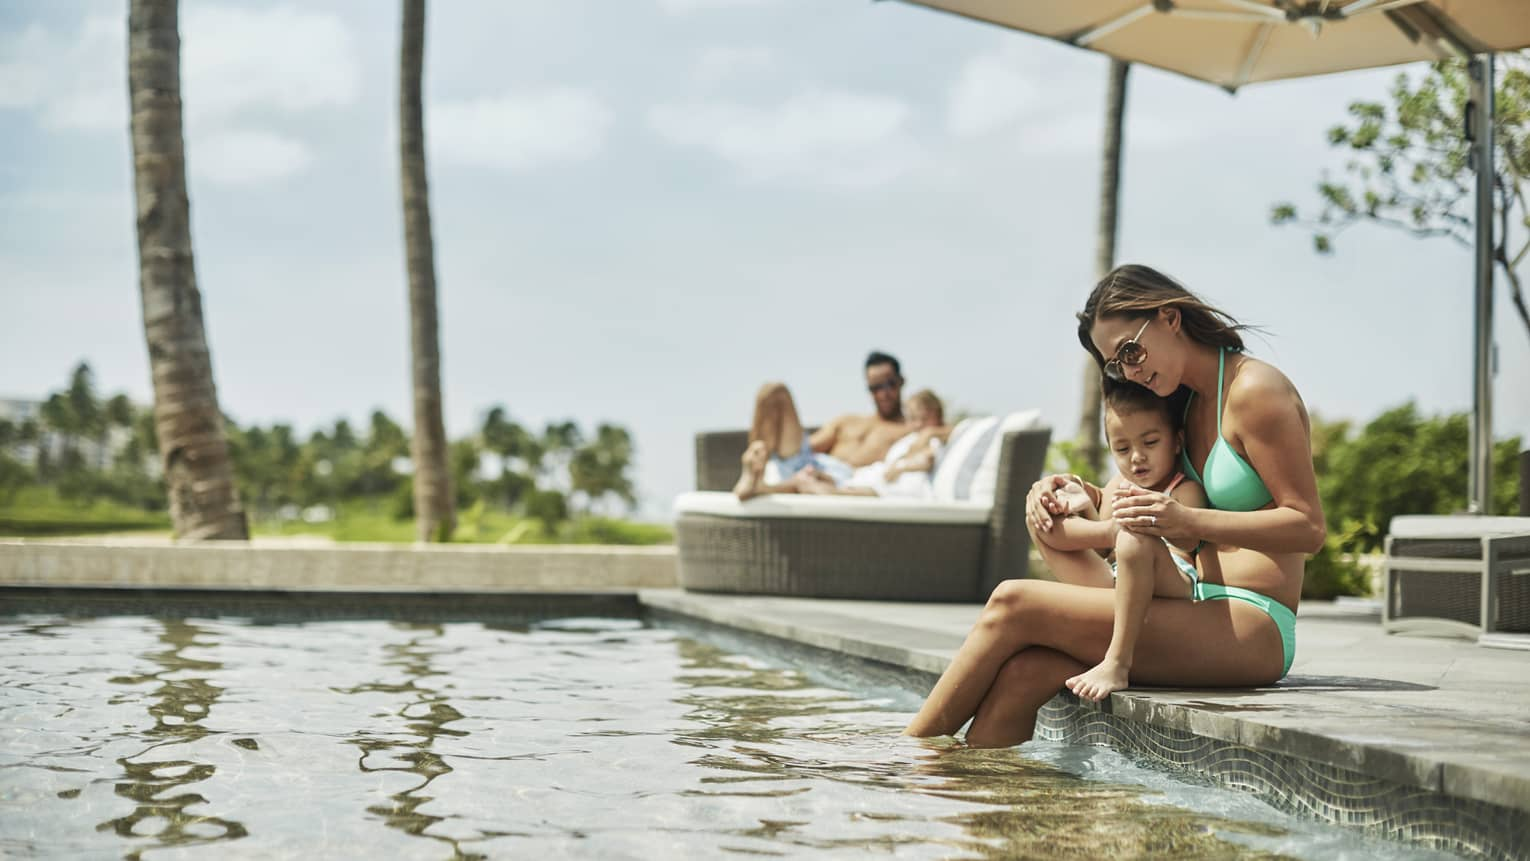 Mom in swimsuit sits on pool edge, cuddles young child, dad and daughter on patio chair